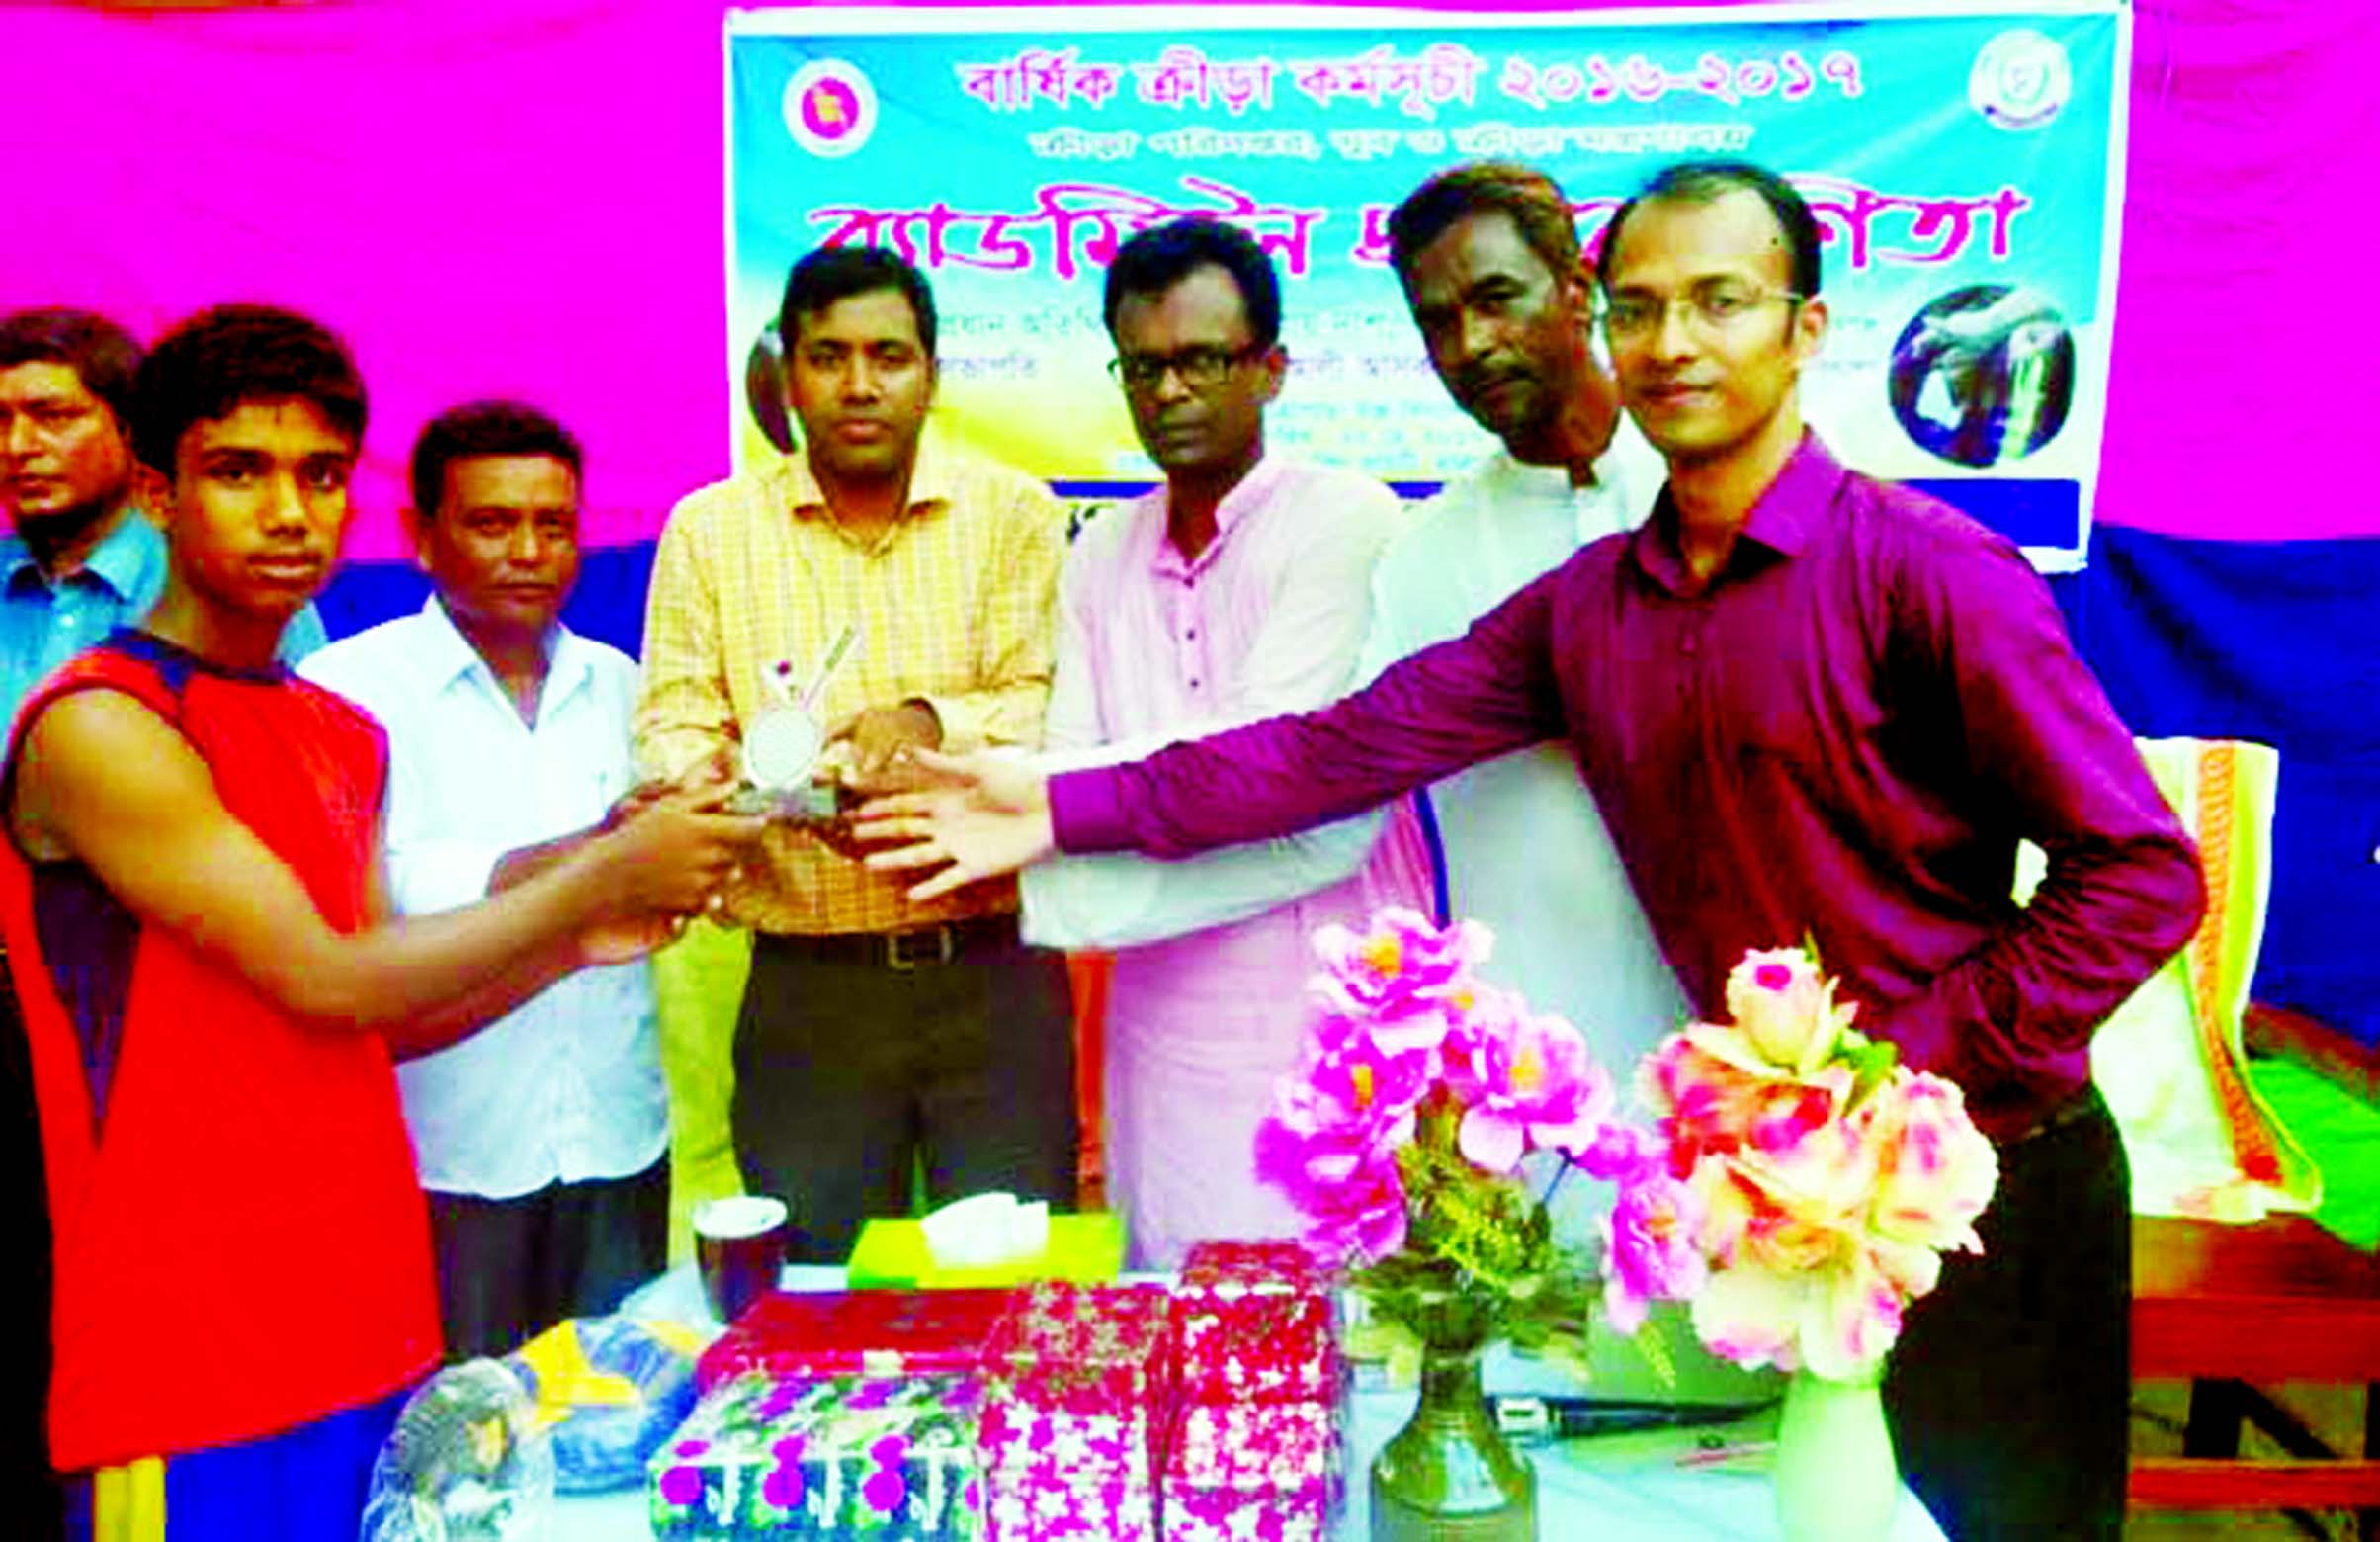 Assistant Commissioner (Land) of Karimganj and Executive Magistrate Satyajit Roy Das distributes the prizes to the winners of the Badminton Competition of Hatrapara High School of Karimganj on Thursday. Kishoreganj District Sports Office arranged the day-long Badminton Competition.